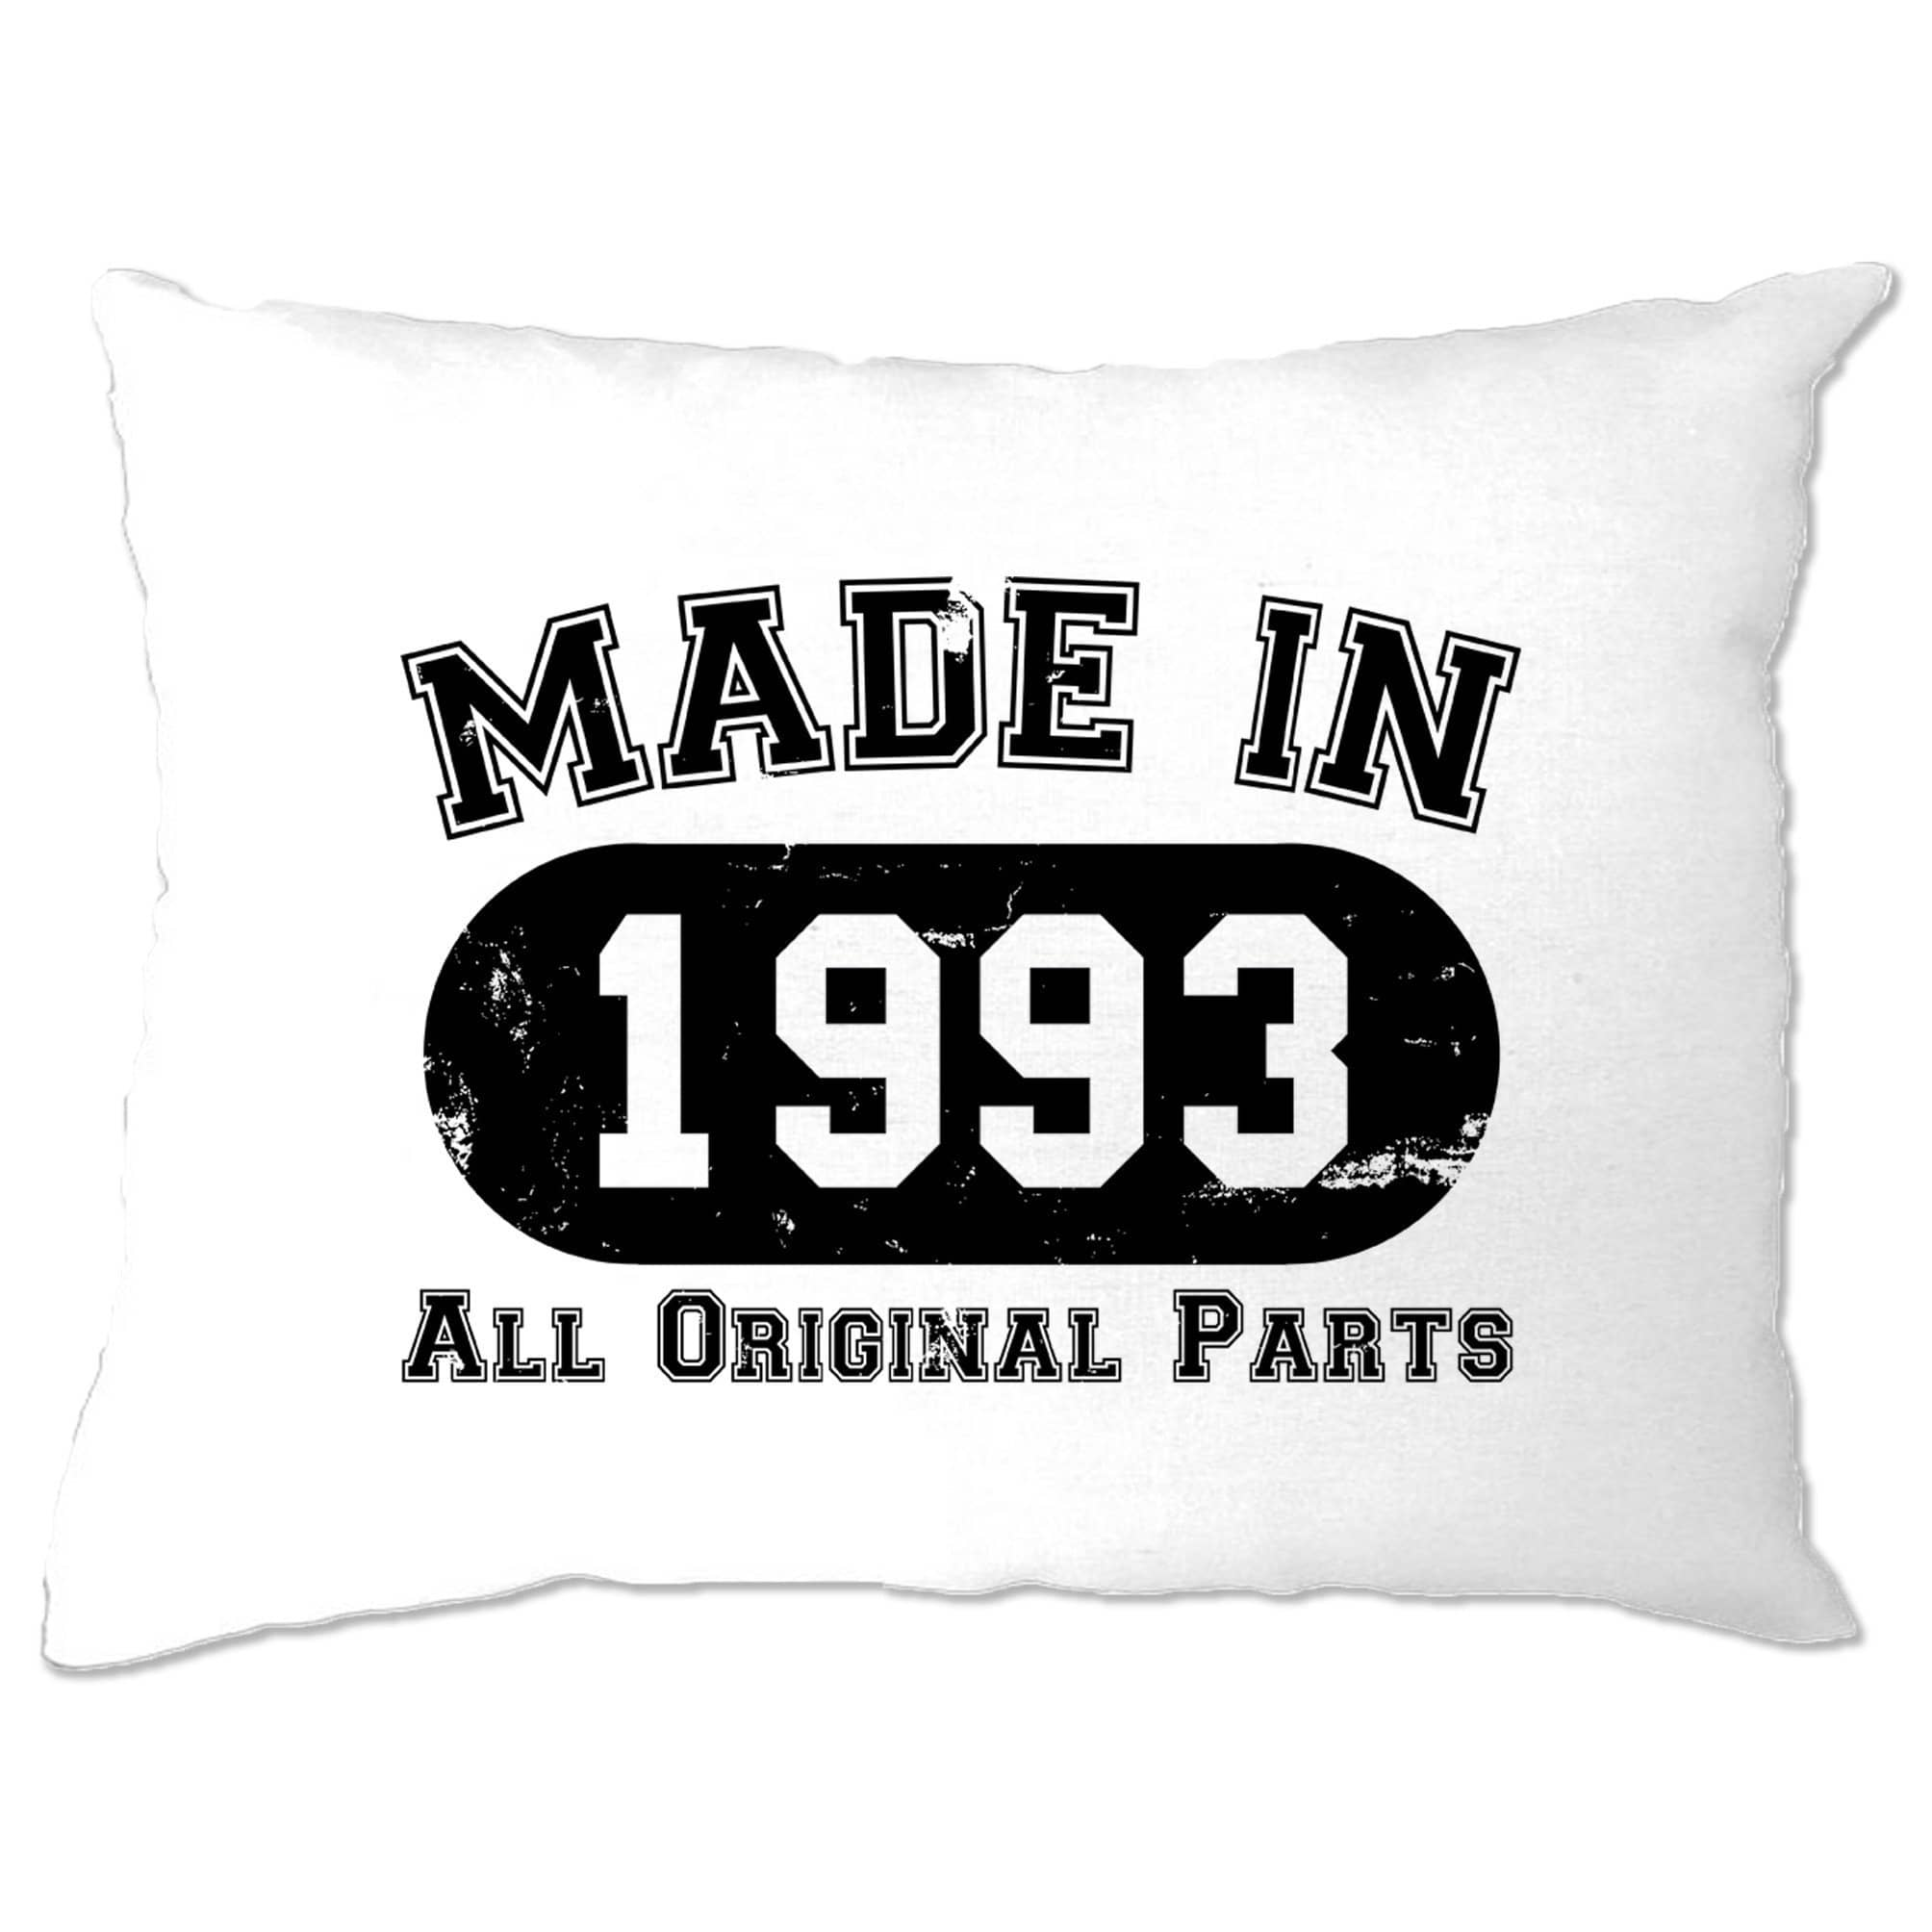 Made in 1993 All Original Parts Pillow Case [Distressed]